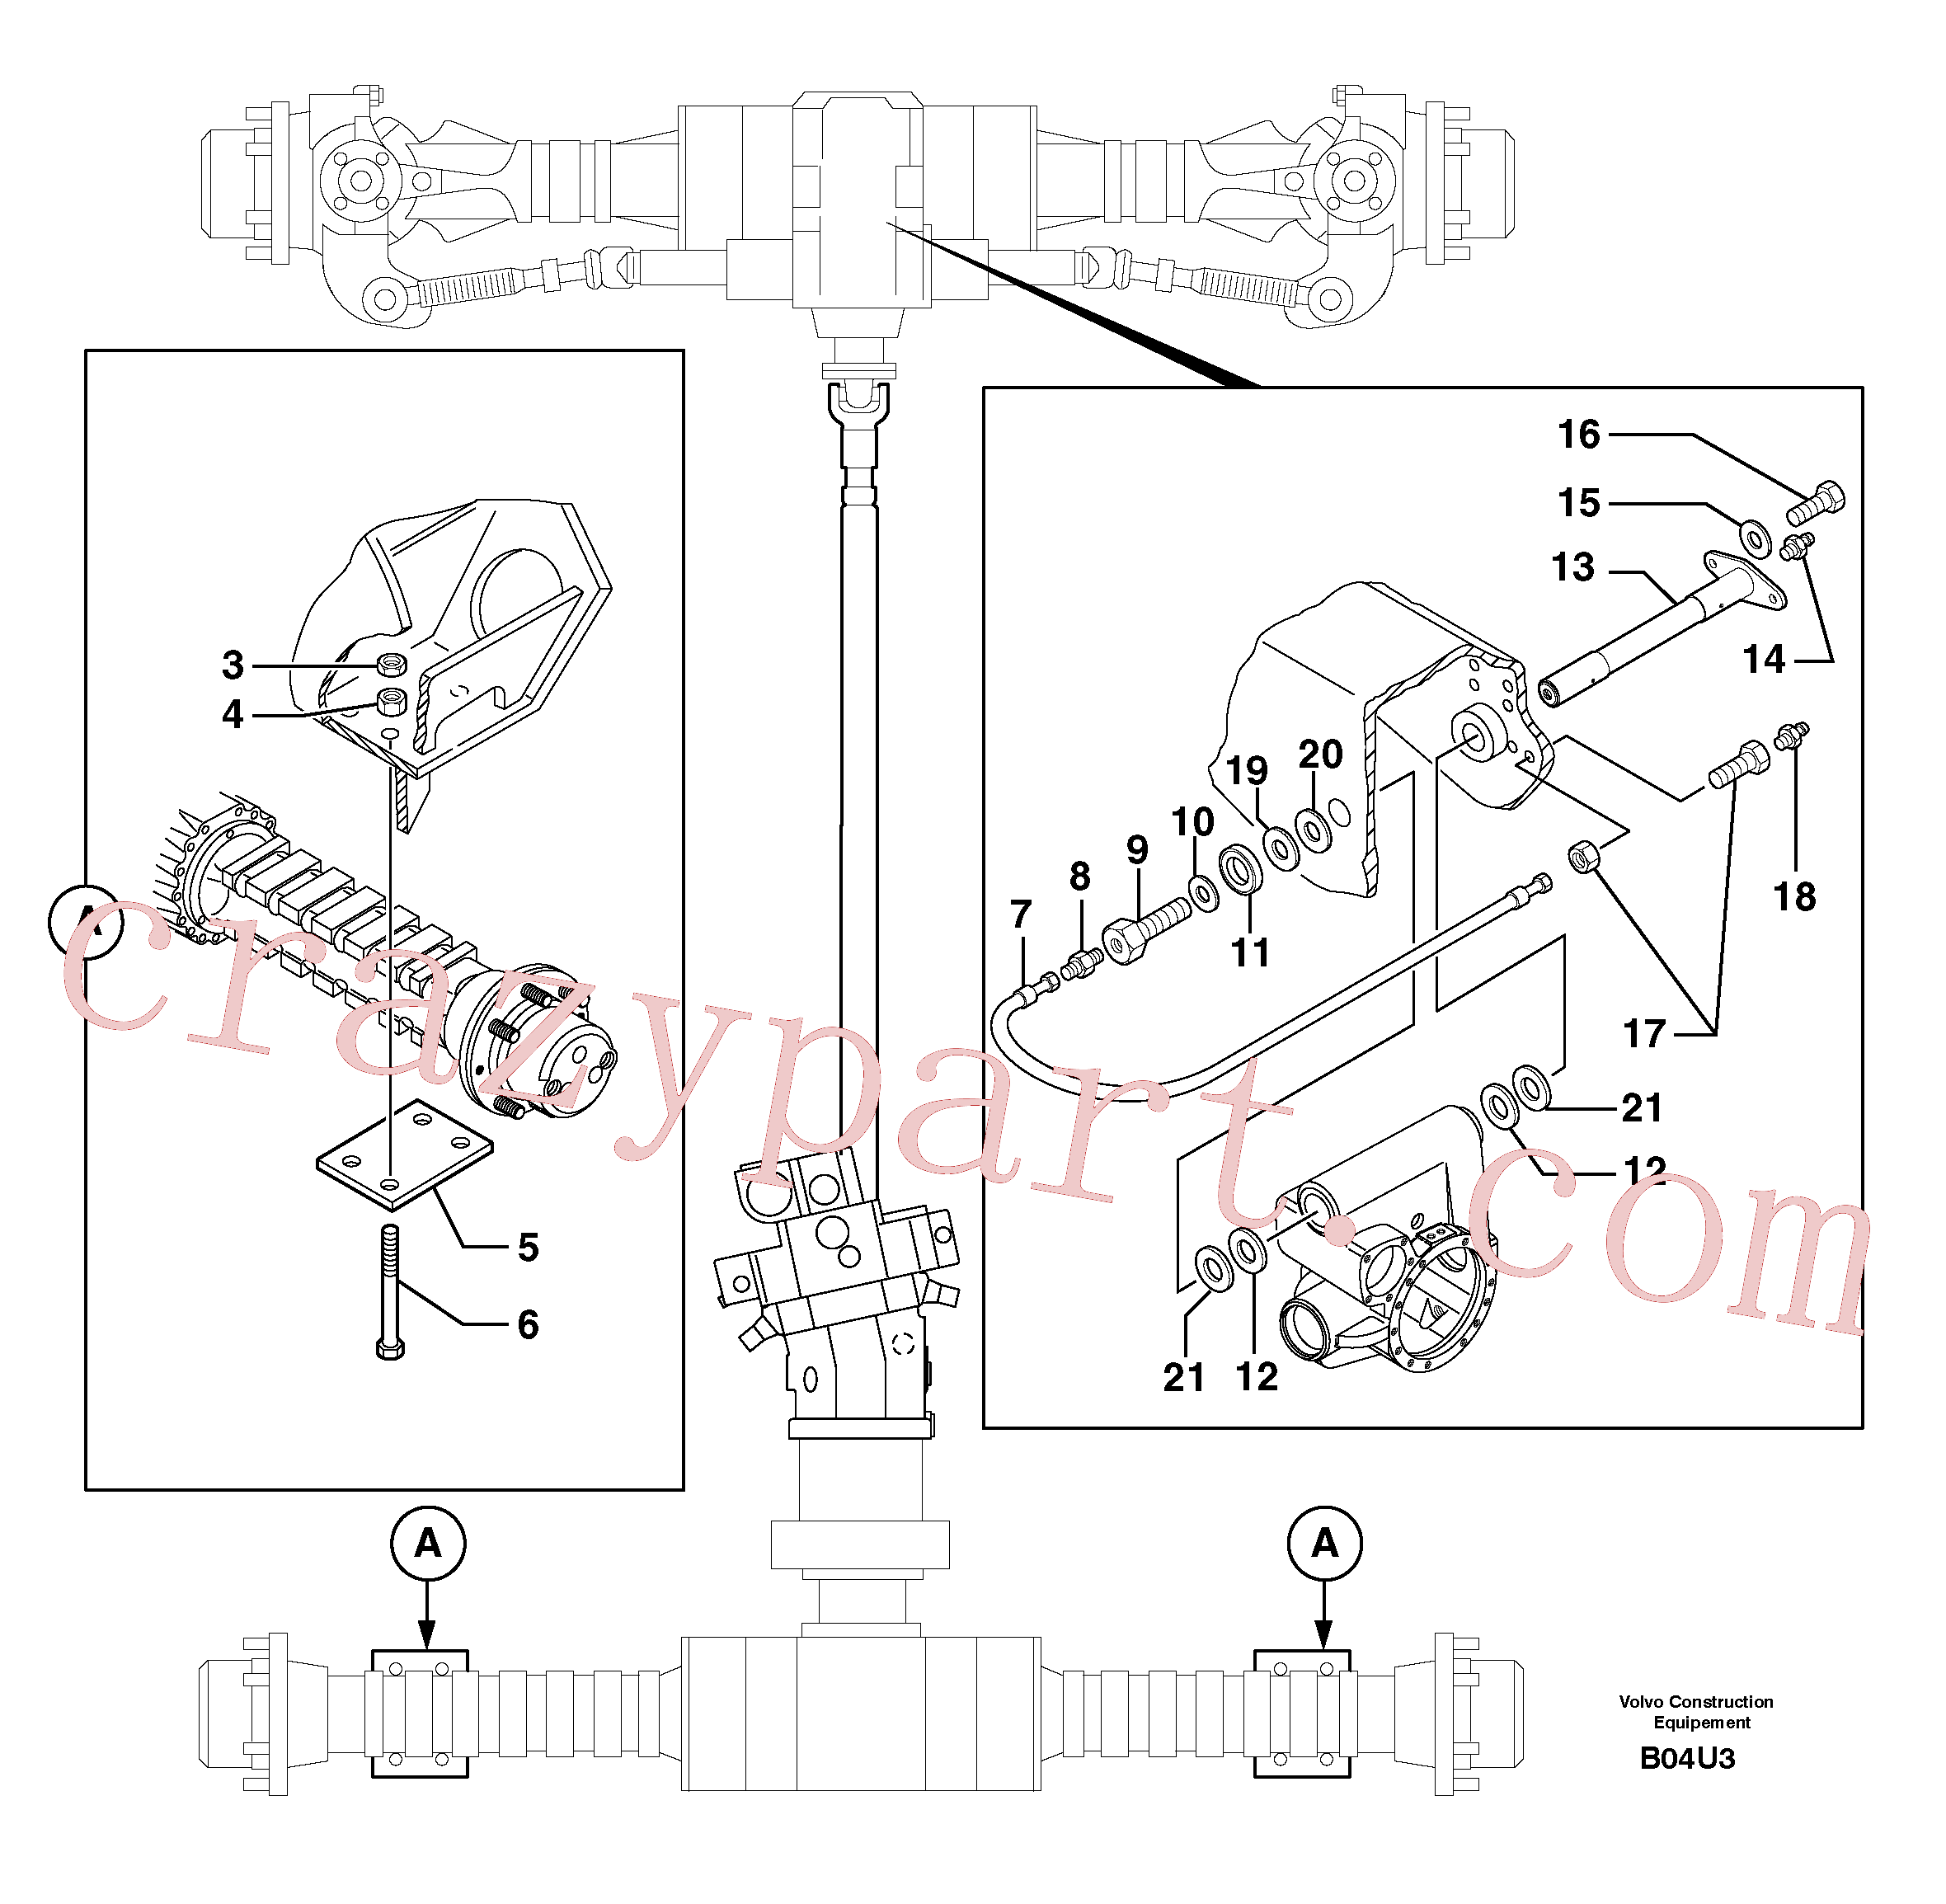 PJ4400027 for Volvo Axle cradles and mountings(B04U3 assembly)